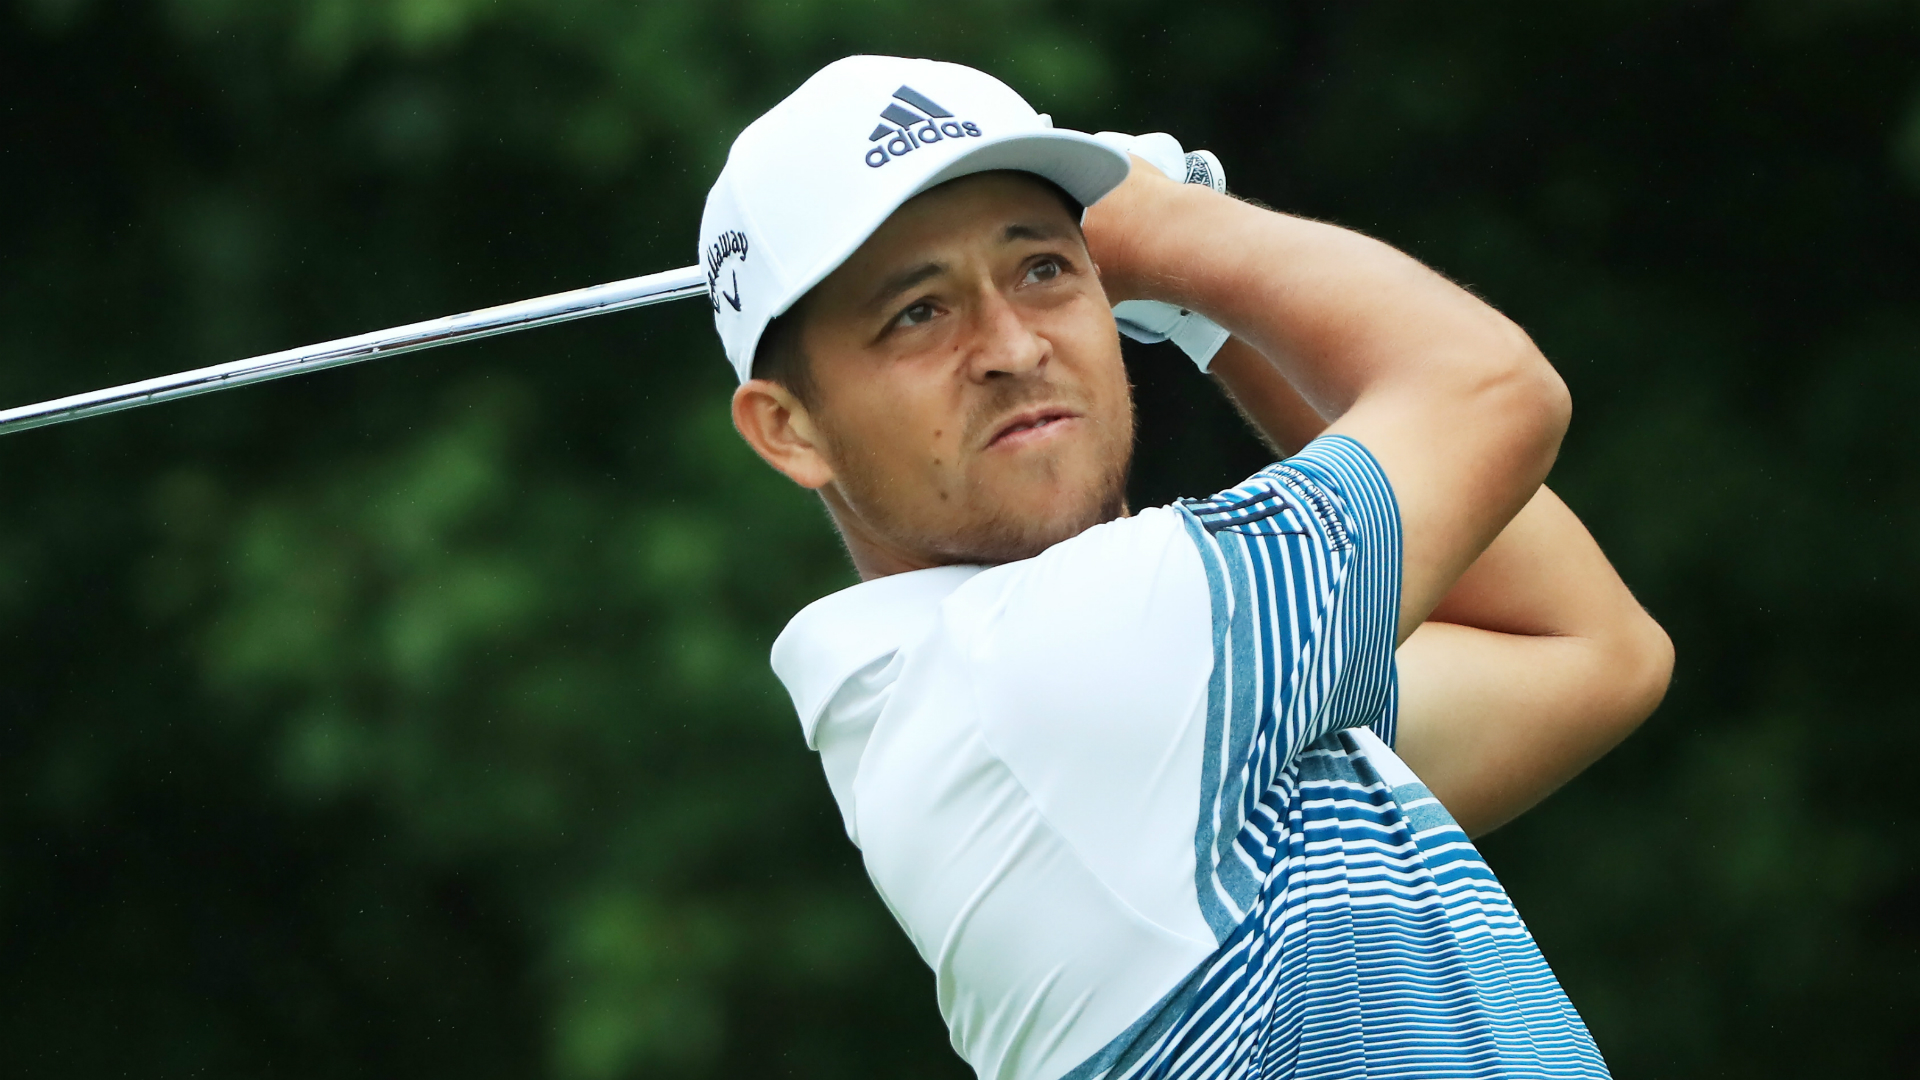 FedEx Cup hopeful Xander Schauffele makes sensational hole-in-one at Tour Championship